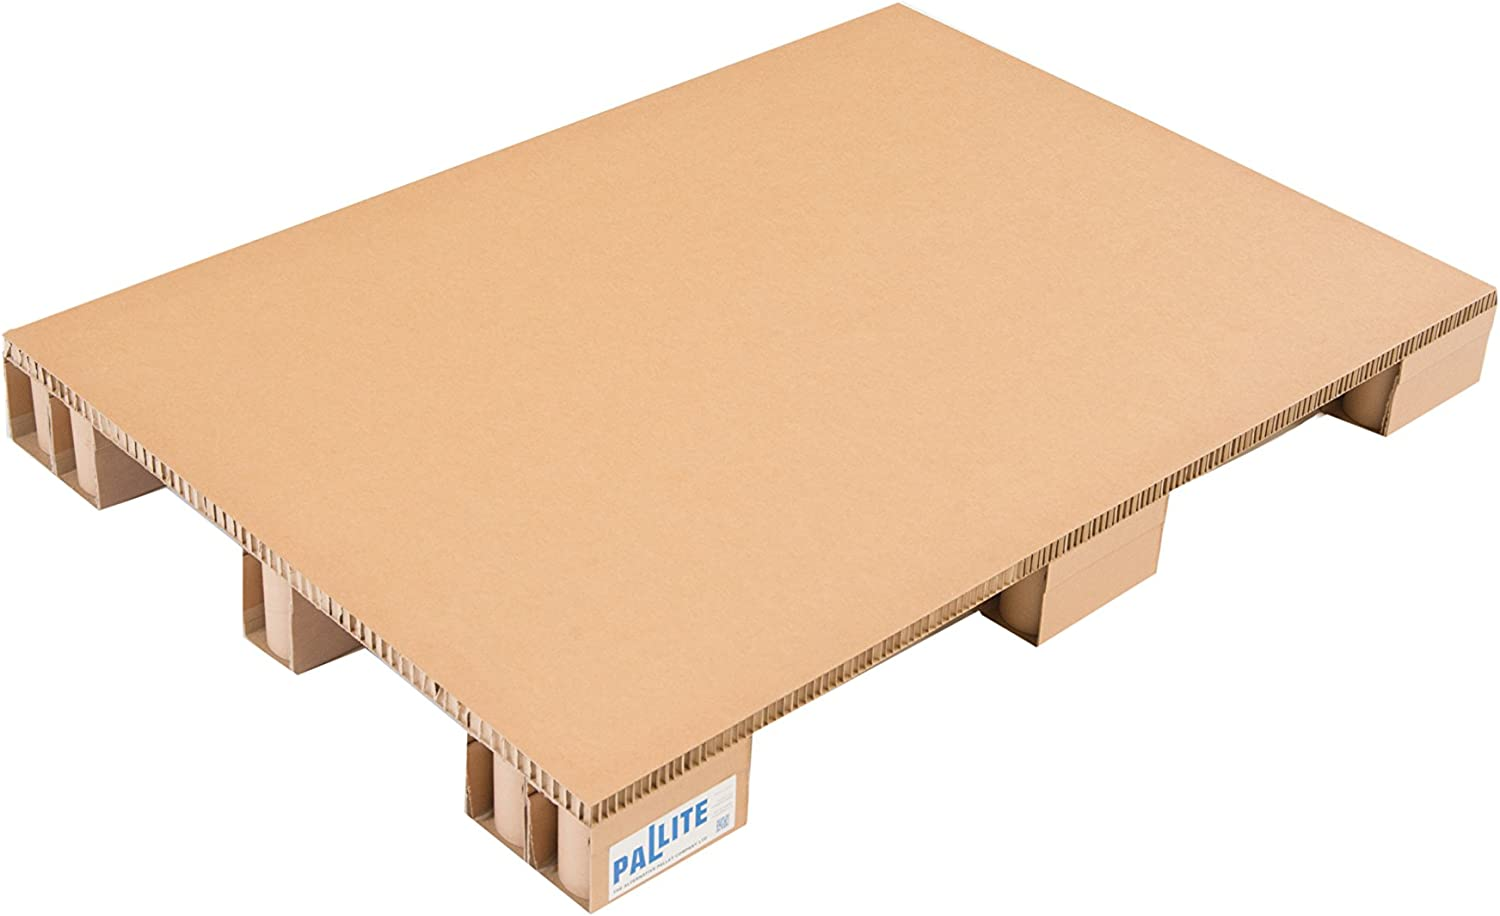 Lightweight Corrugated Pallet Heavy Duty 800 x 1200mm Euro Size No Frame